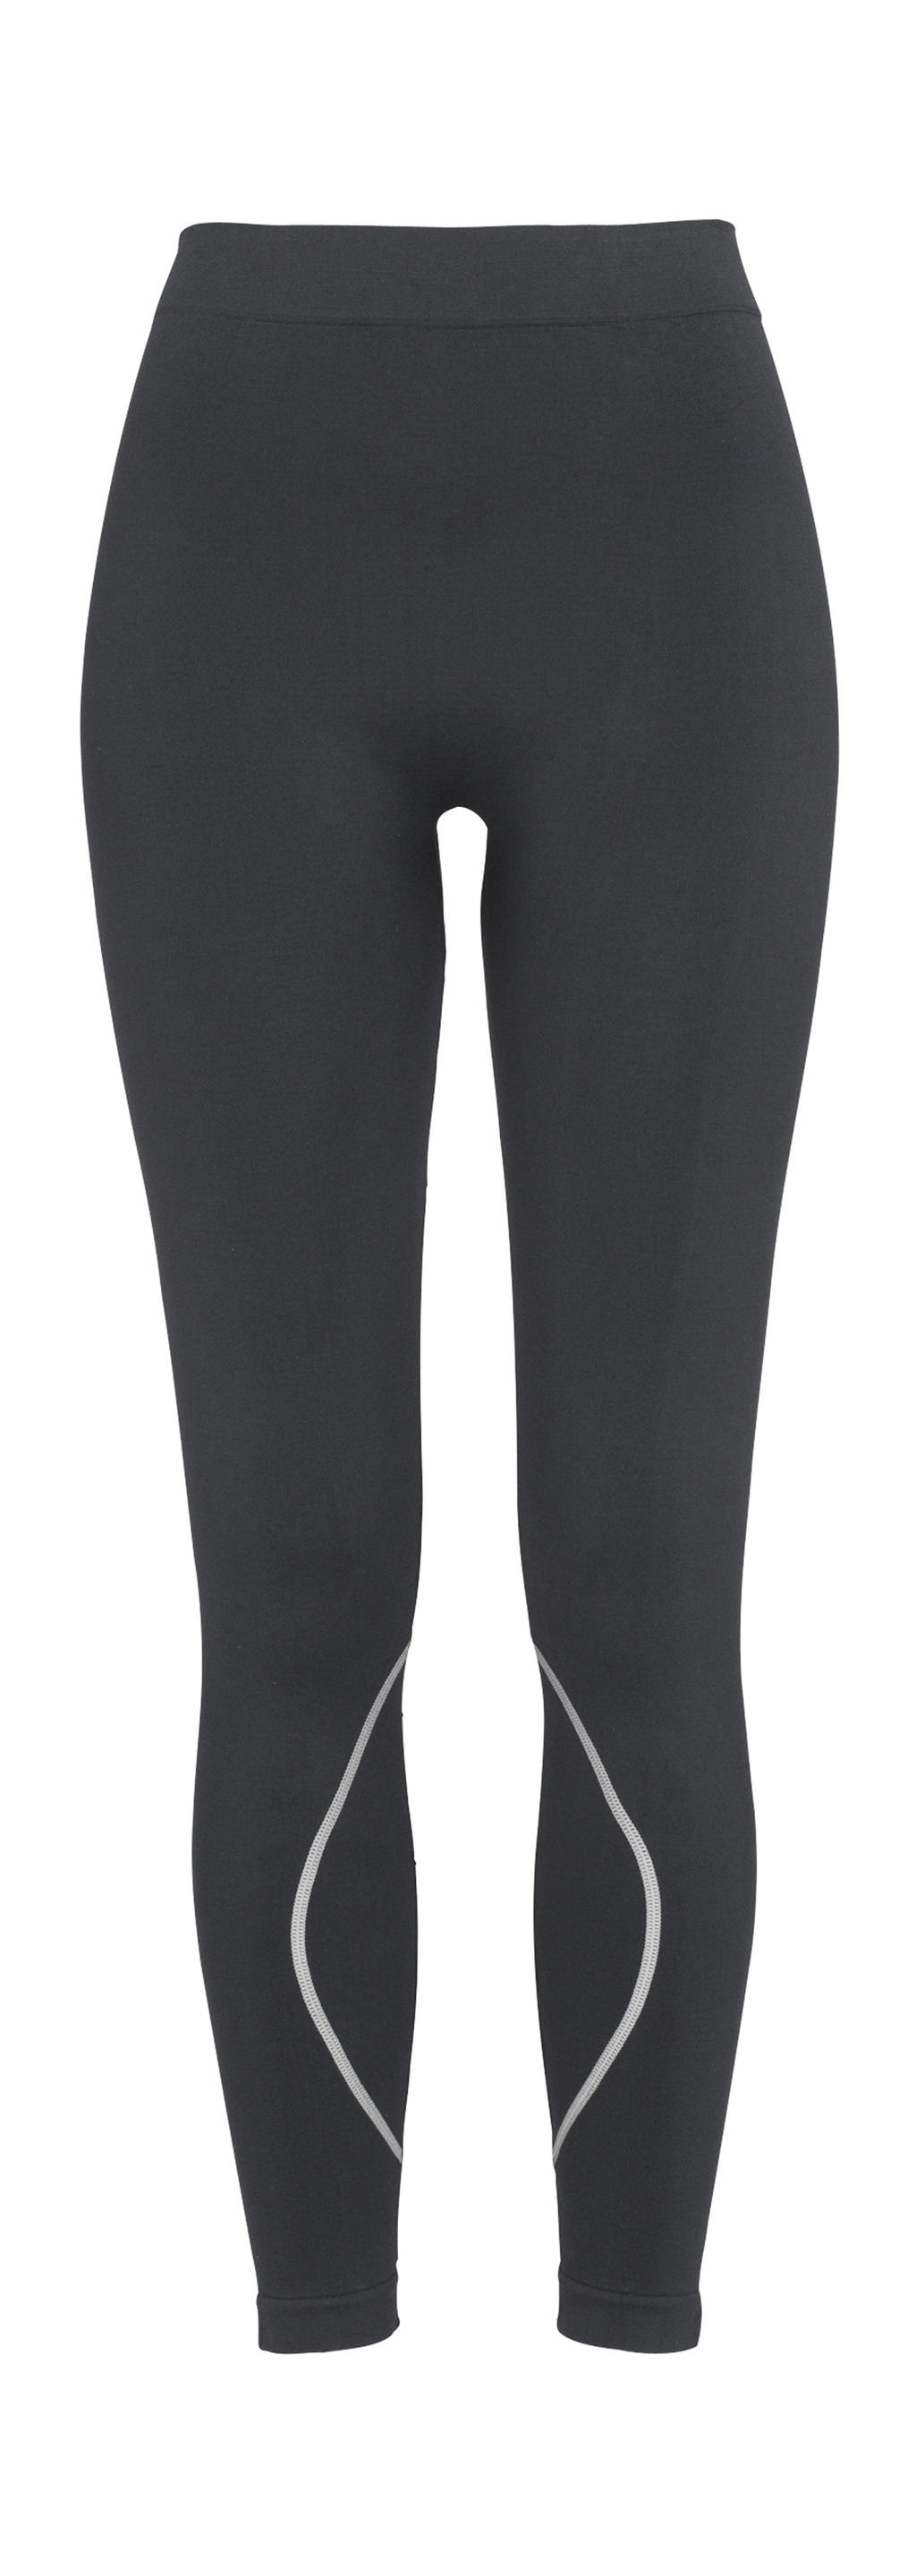 Stedman Active Seamless Pants Women